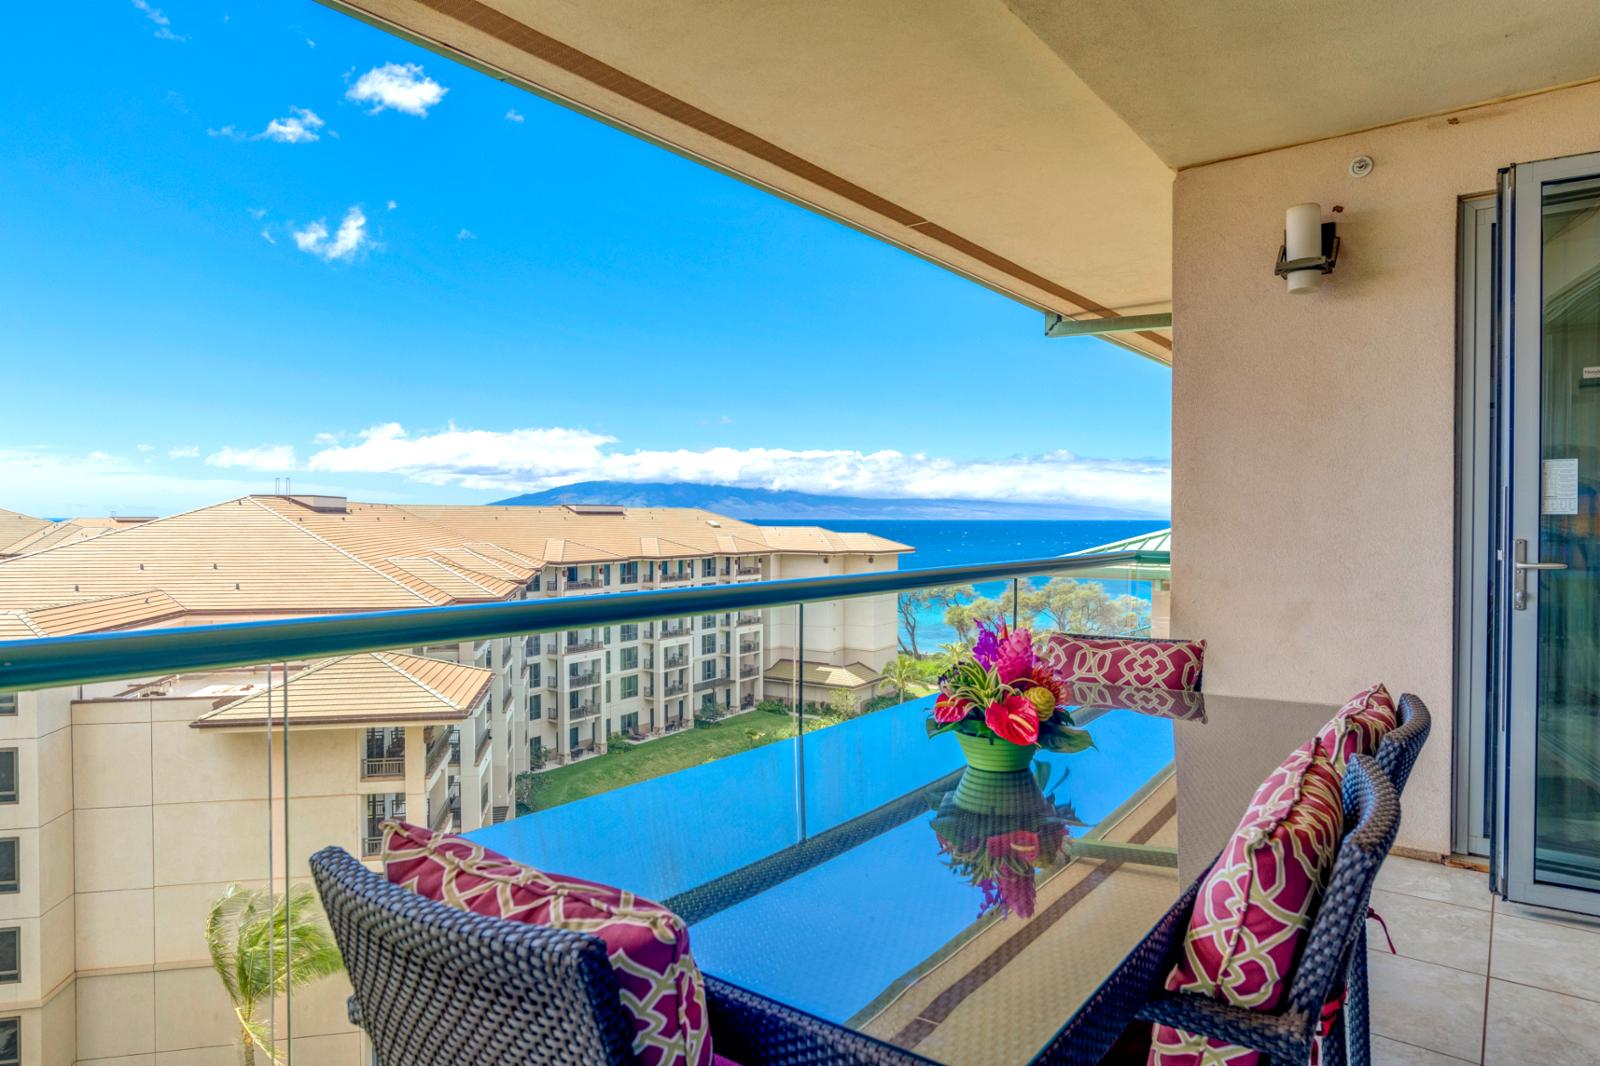 Aqua Marine views and the island of Lanai back drop!